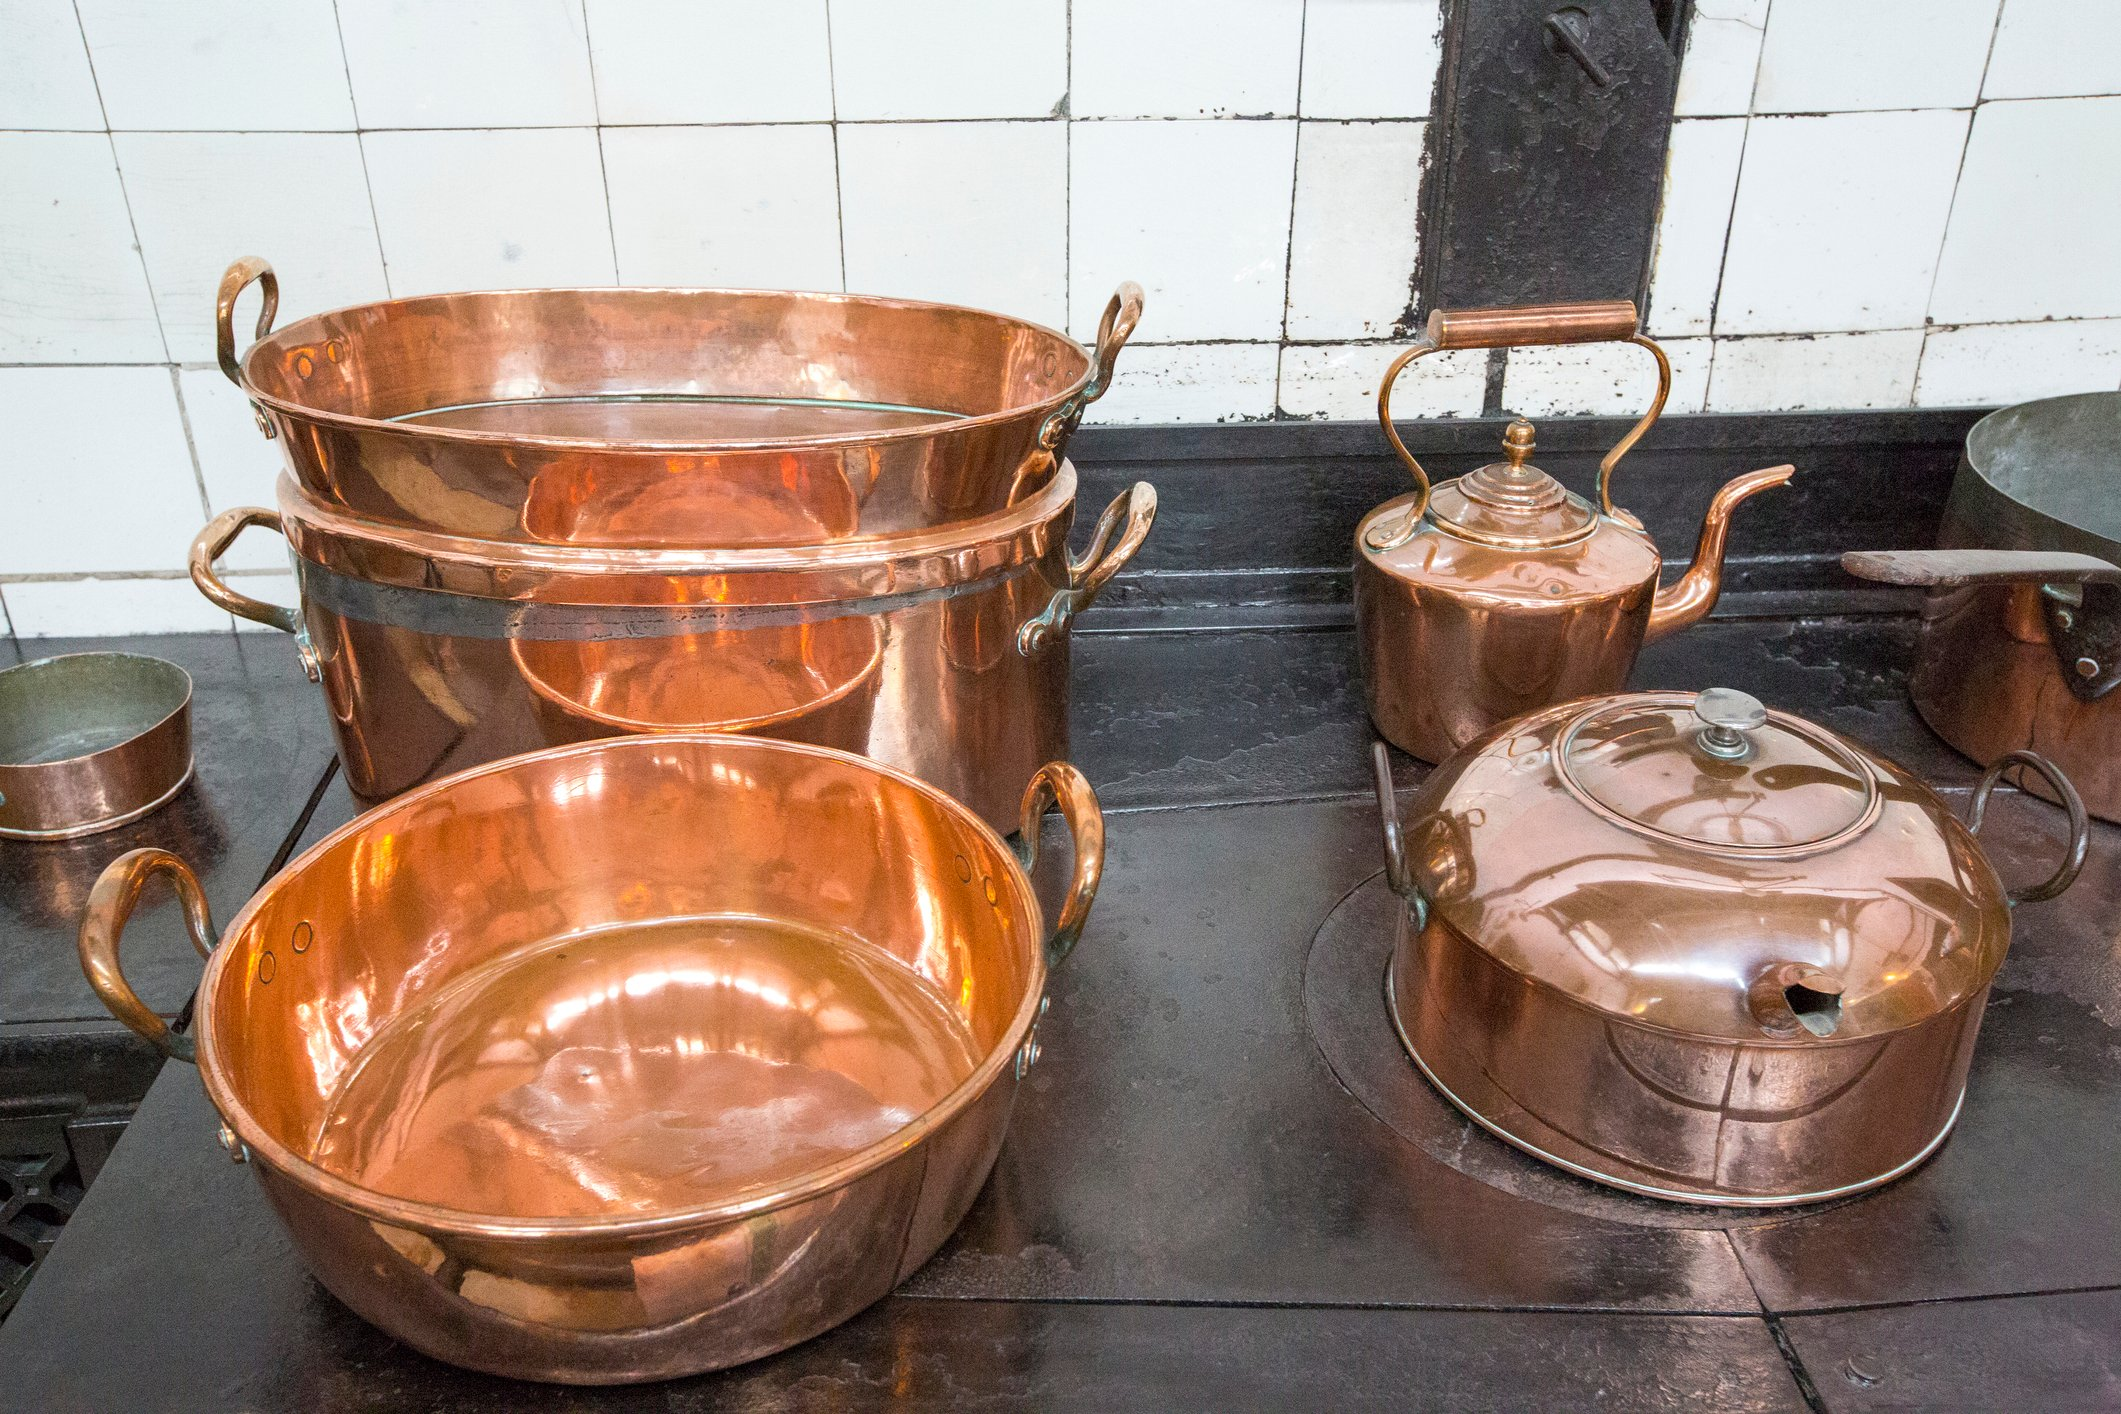 Copper pots and pans in the kitchen at Lanhydrock a country residence dating from the 1600's in Cornwall, UK.